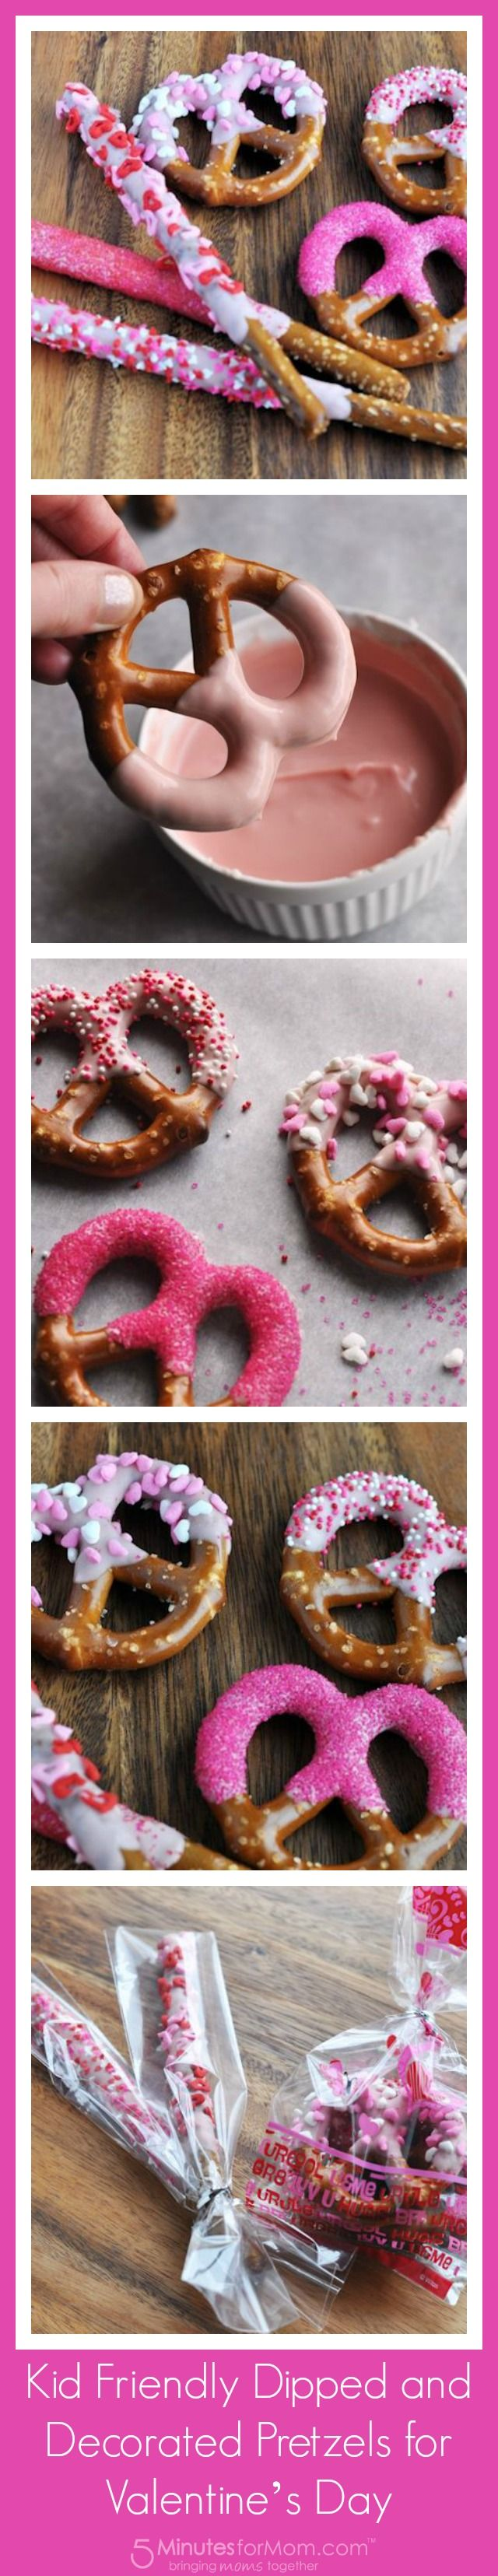 diy easy chocolate dipped pretzels for valentines day!